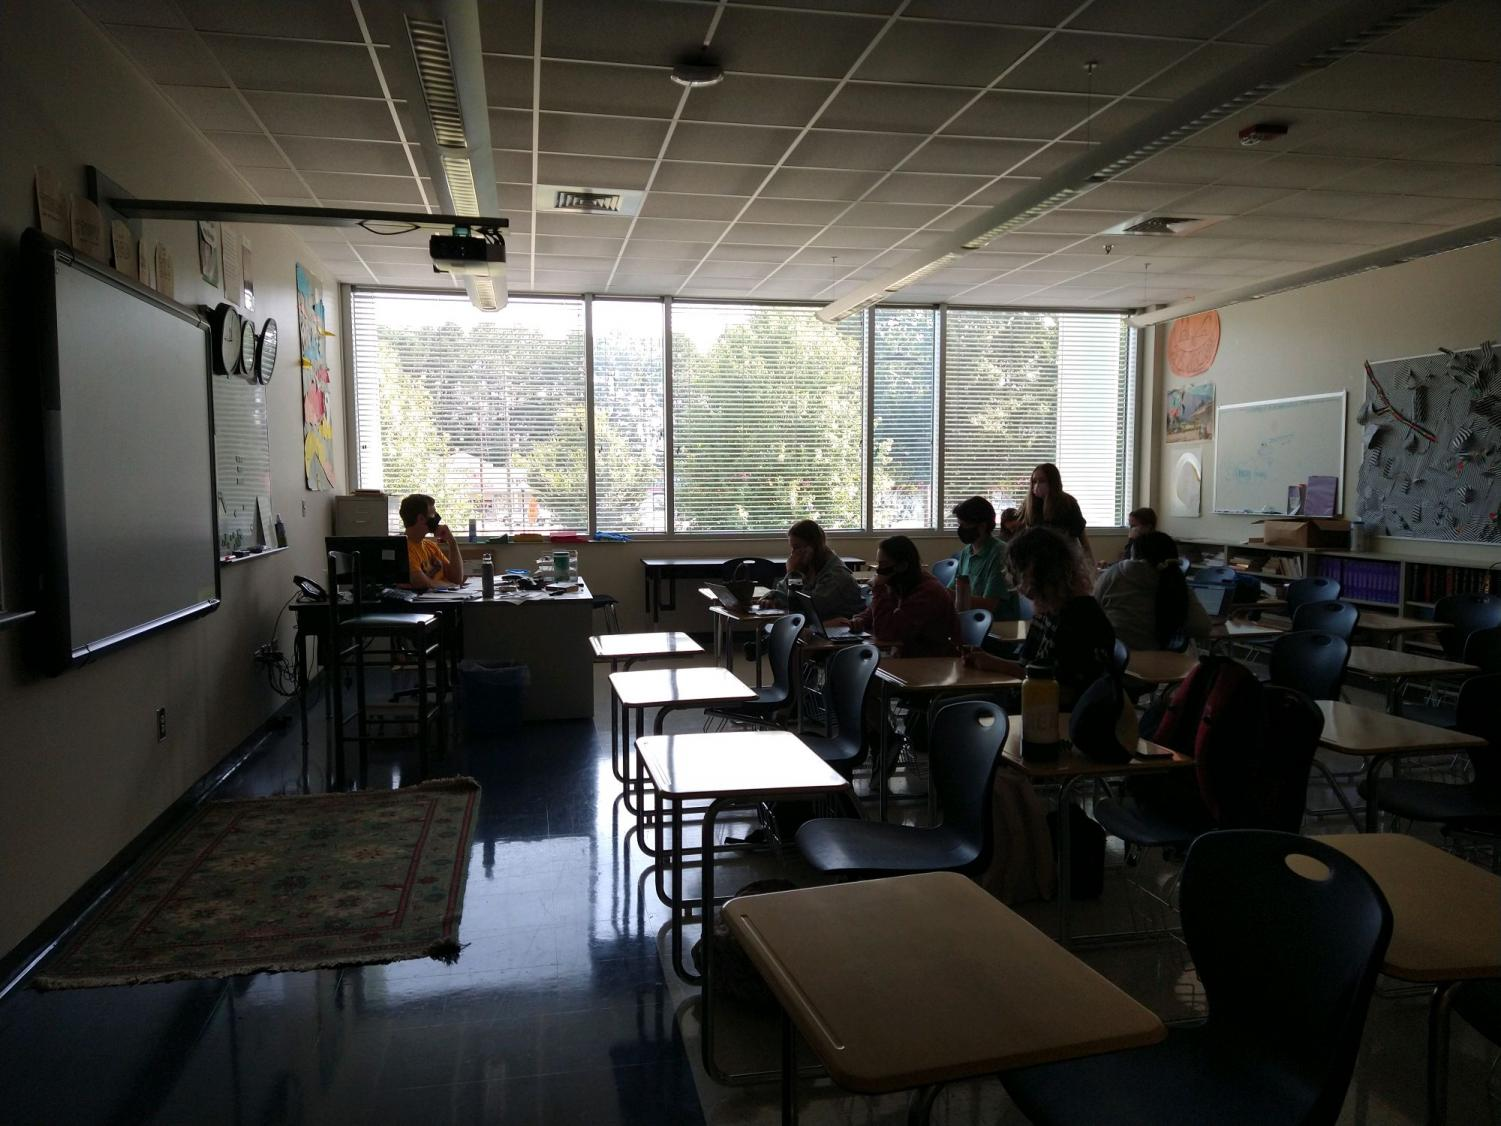 Journalism students learn safely in a classroom.